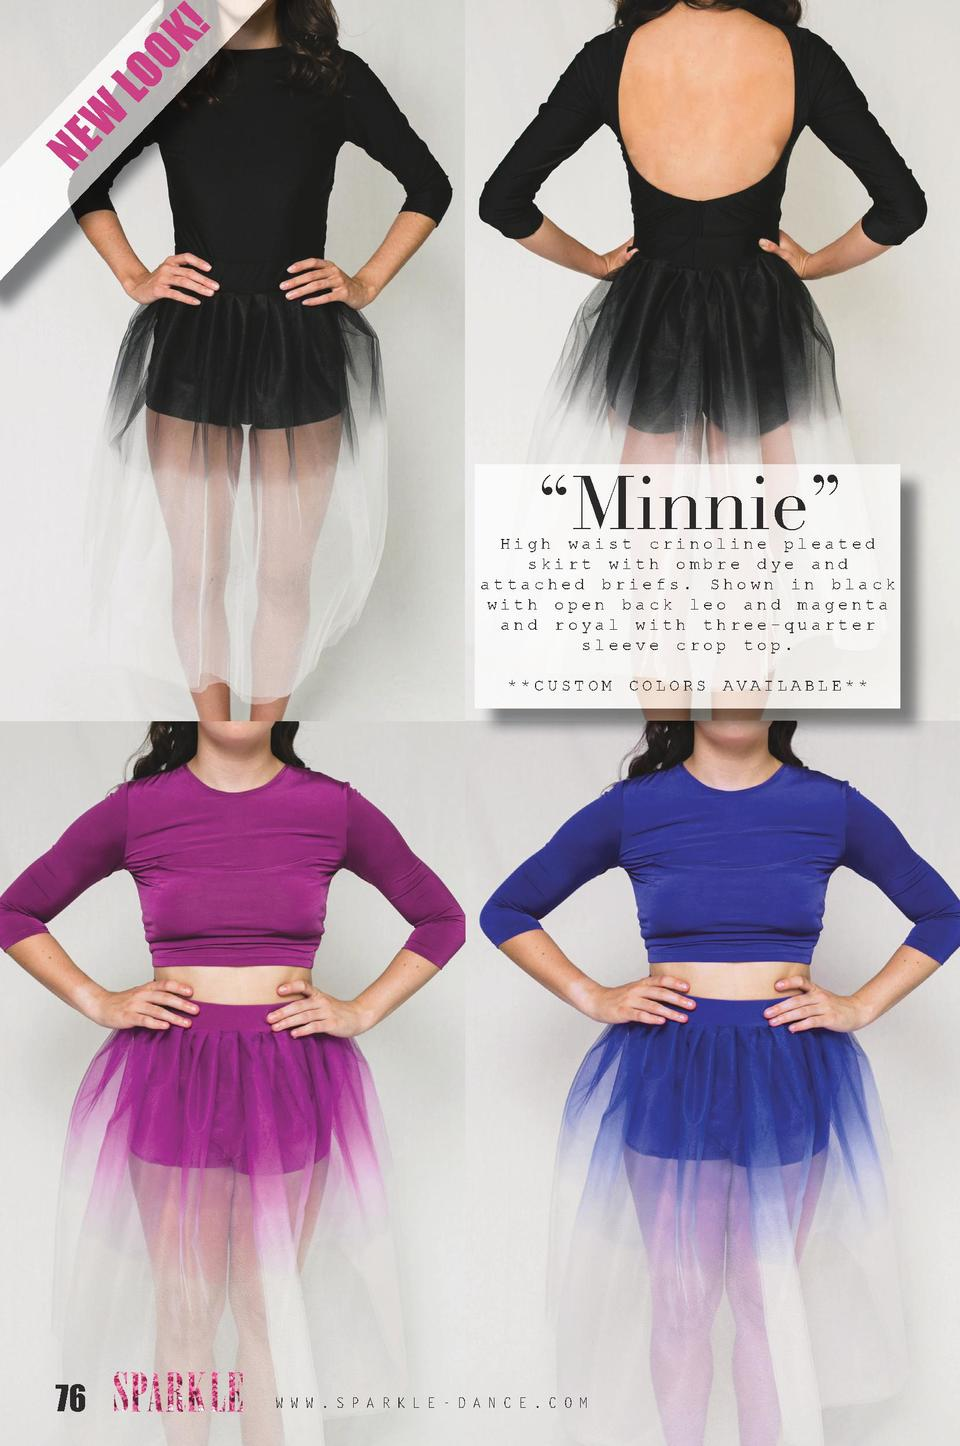 K  LO O W NE     Minnie     High waist crinoline pleated skirt with ombre dye and attached briefs. Shown in black with ope...